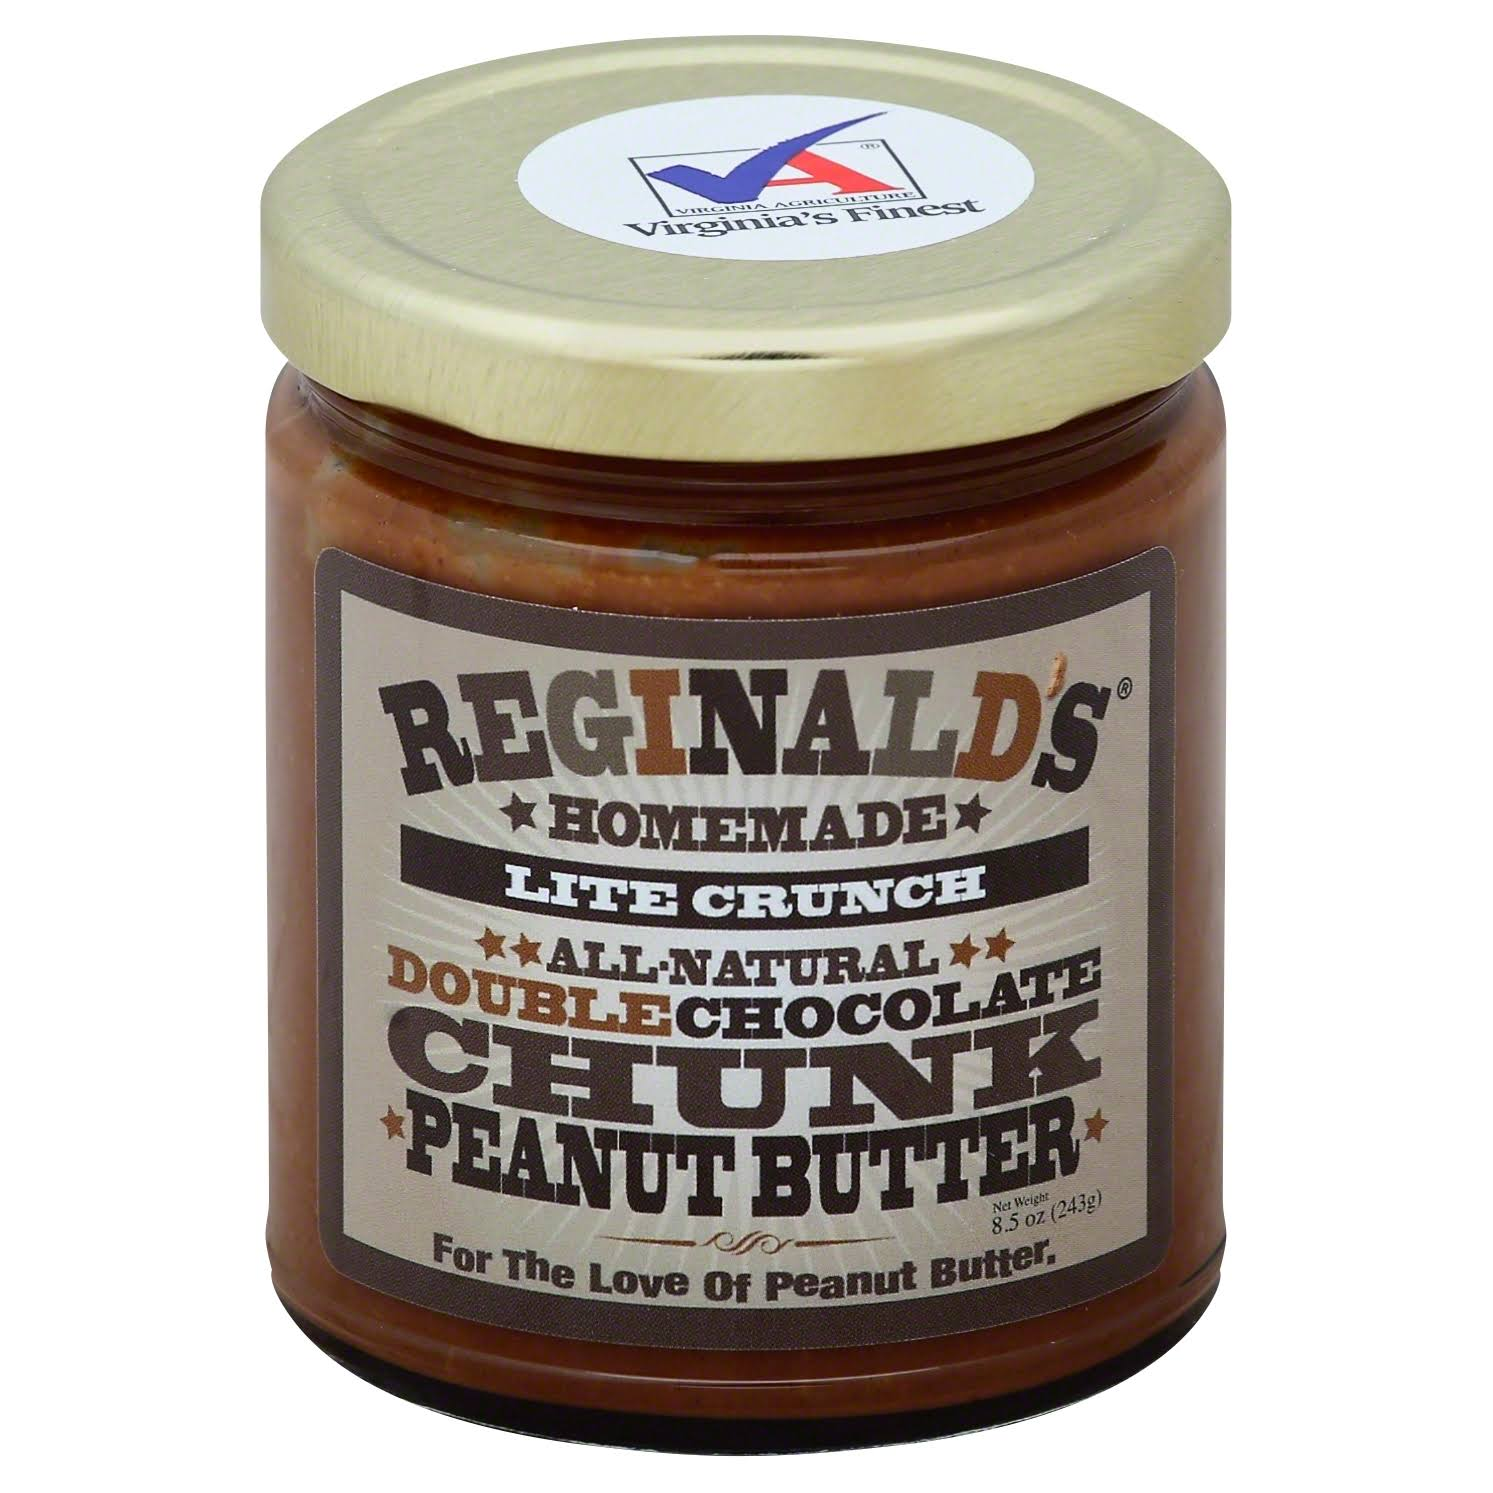 Reginalds Homemade Peanut Butter, Double Chocolate Chunk, Lite Crunch - 8.5 oz